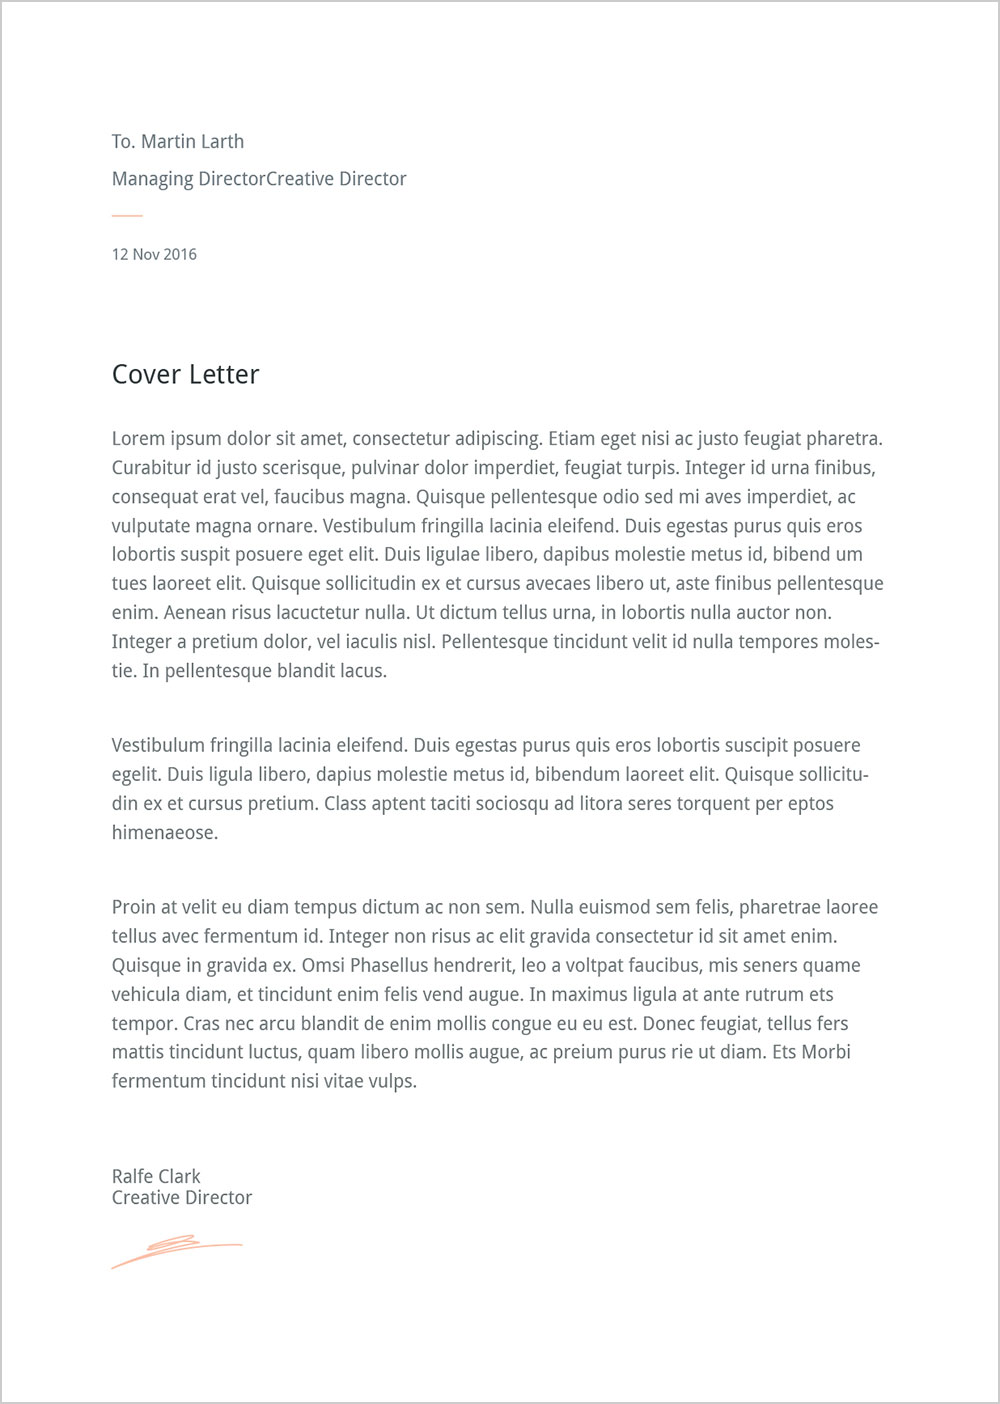 Free-Modern-Resume-Template--Cover-Letter-&-Portfolio-in-Ai-Format-005